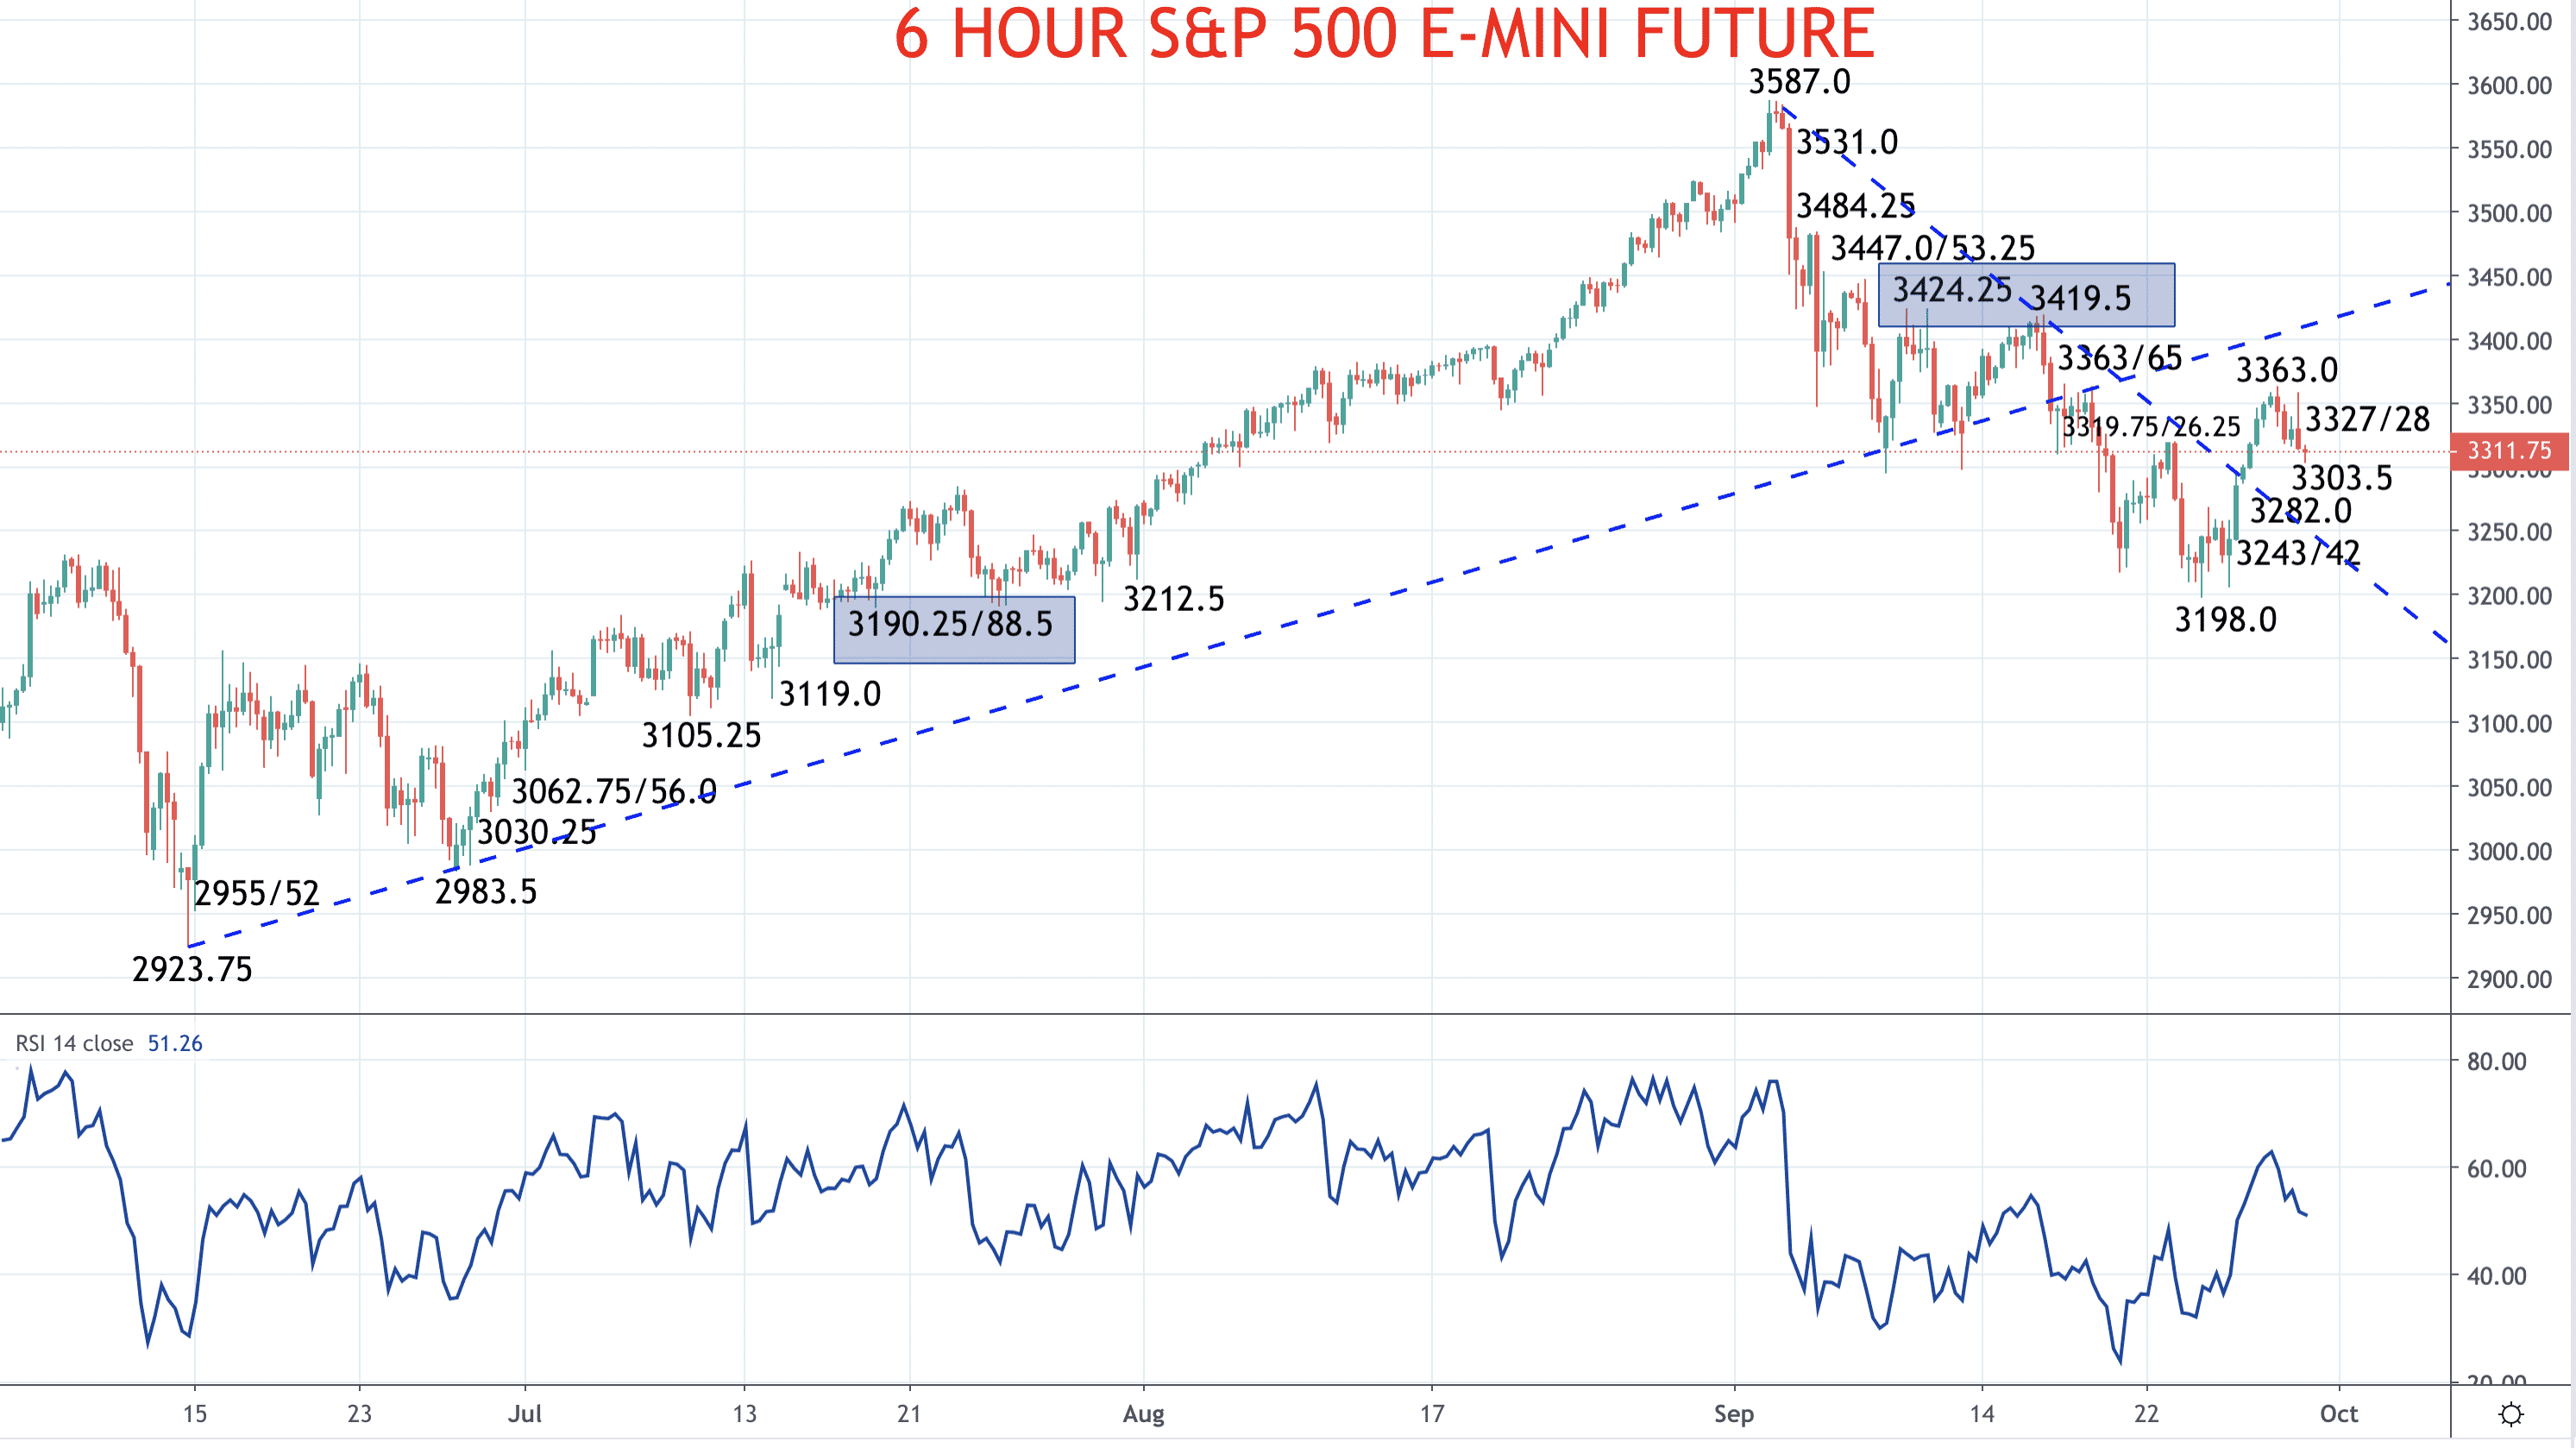 S&P 500 rebound, bigger bear threat eased, for now – S&P 500 forecast Image